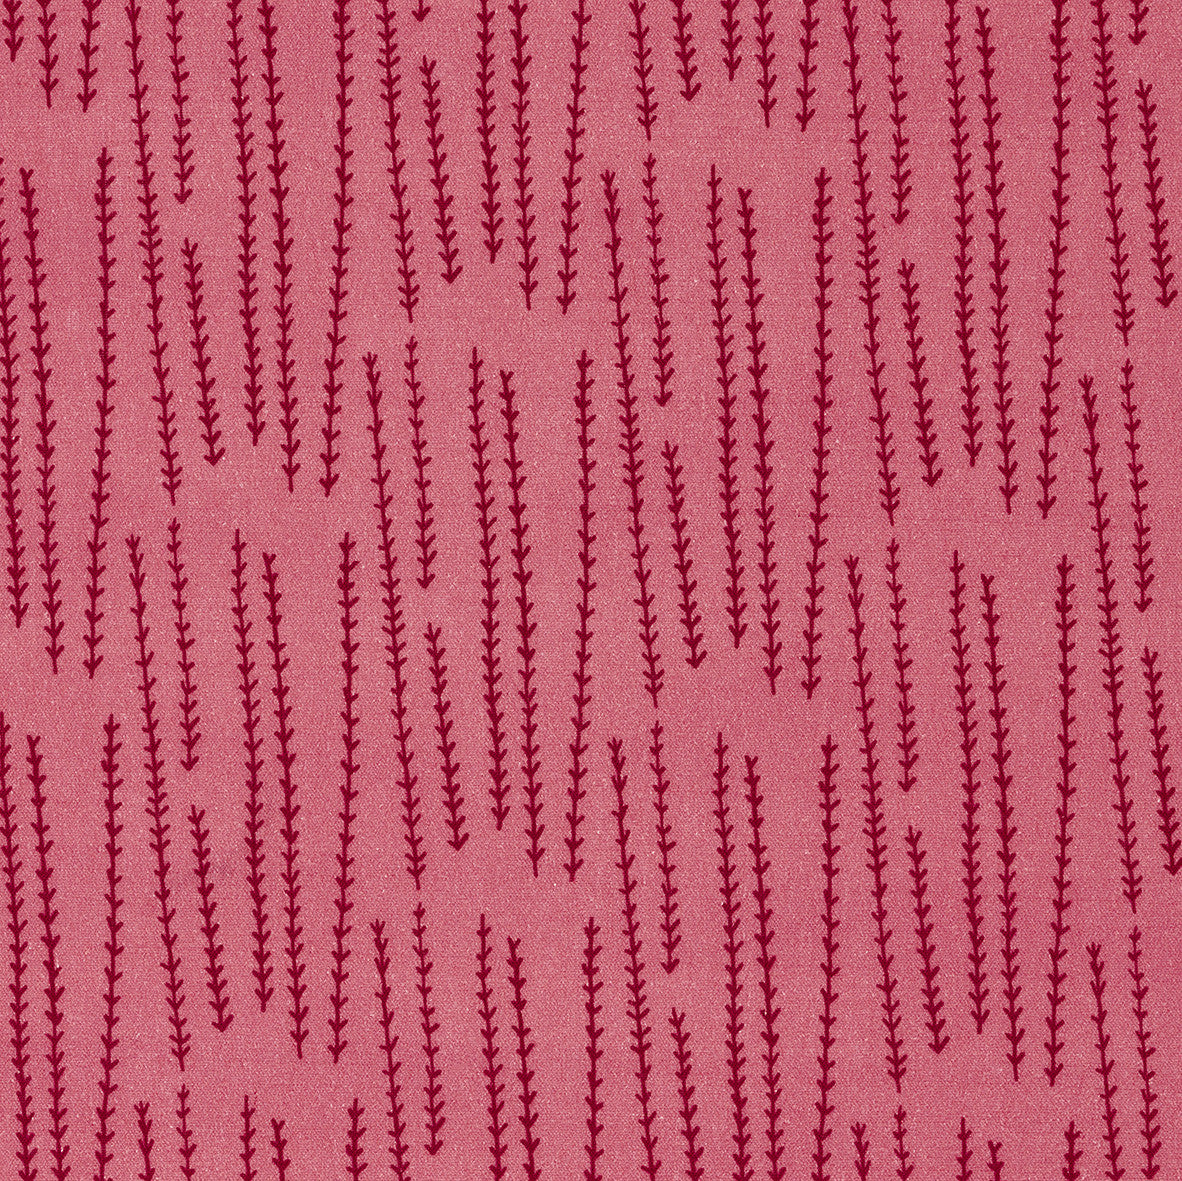 Graphic Rosemary Sprig Pattern Printed Linen Cotton Canvas Home Decor Fabric by the yard or meter for curtains, blinds or upholstery in Bright Coral Pink & Vermilion Red ships from Canada (USA)